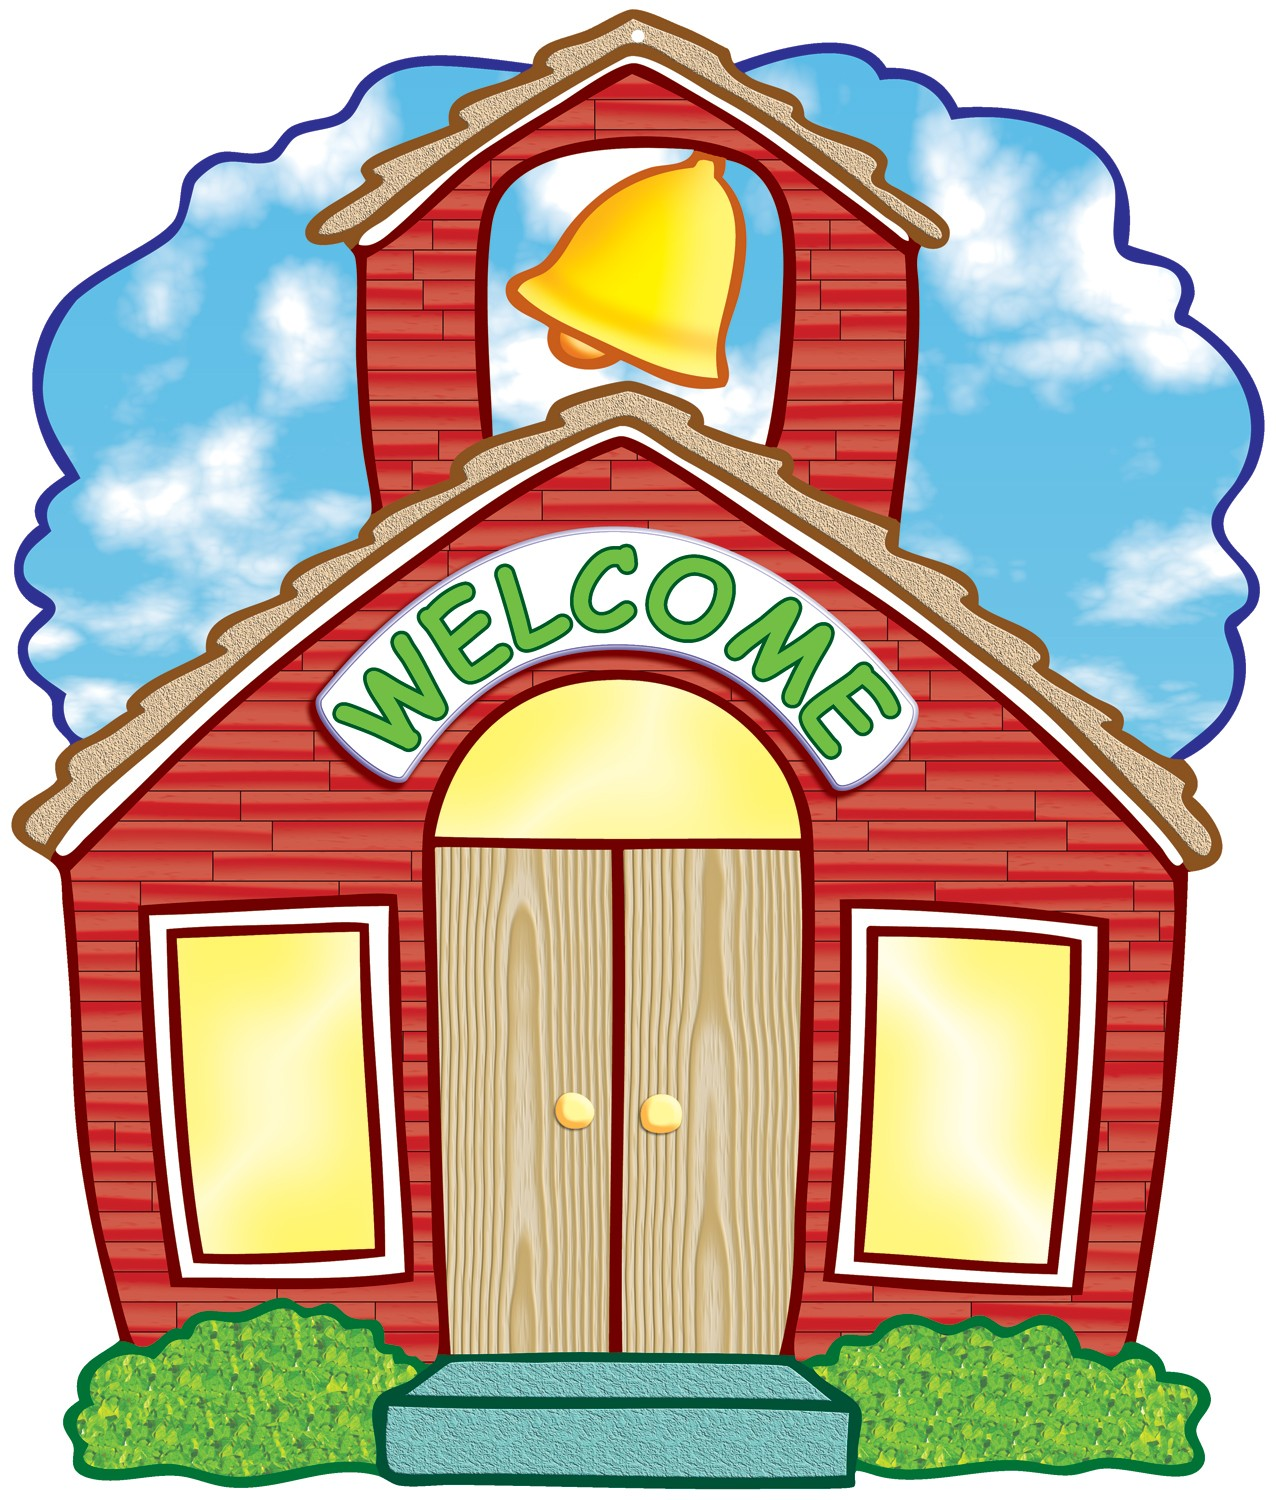 1276x1500 Open House Clipart House School Collection School Images